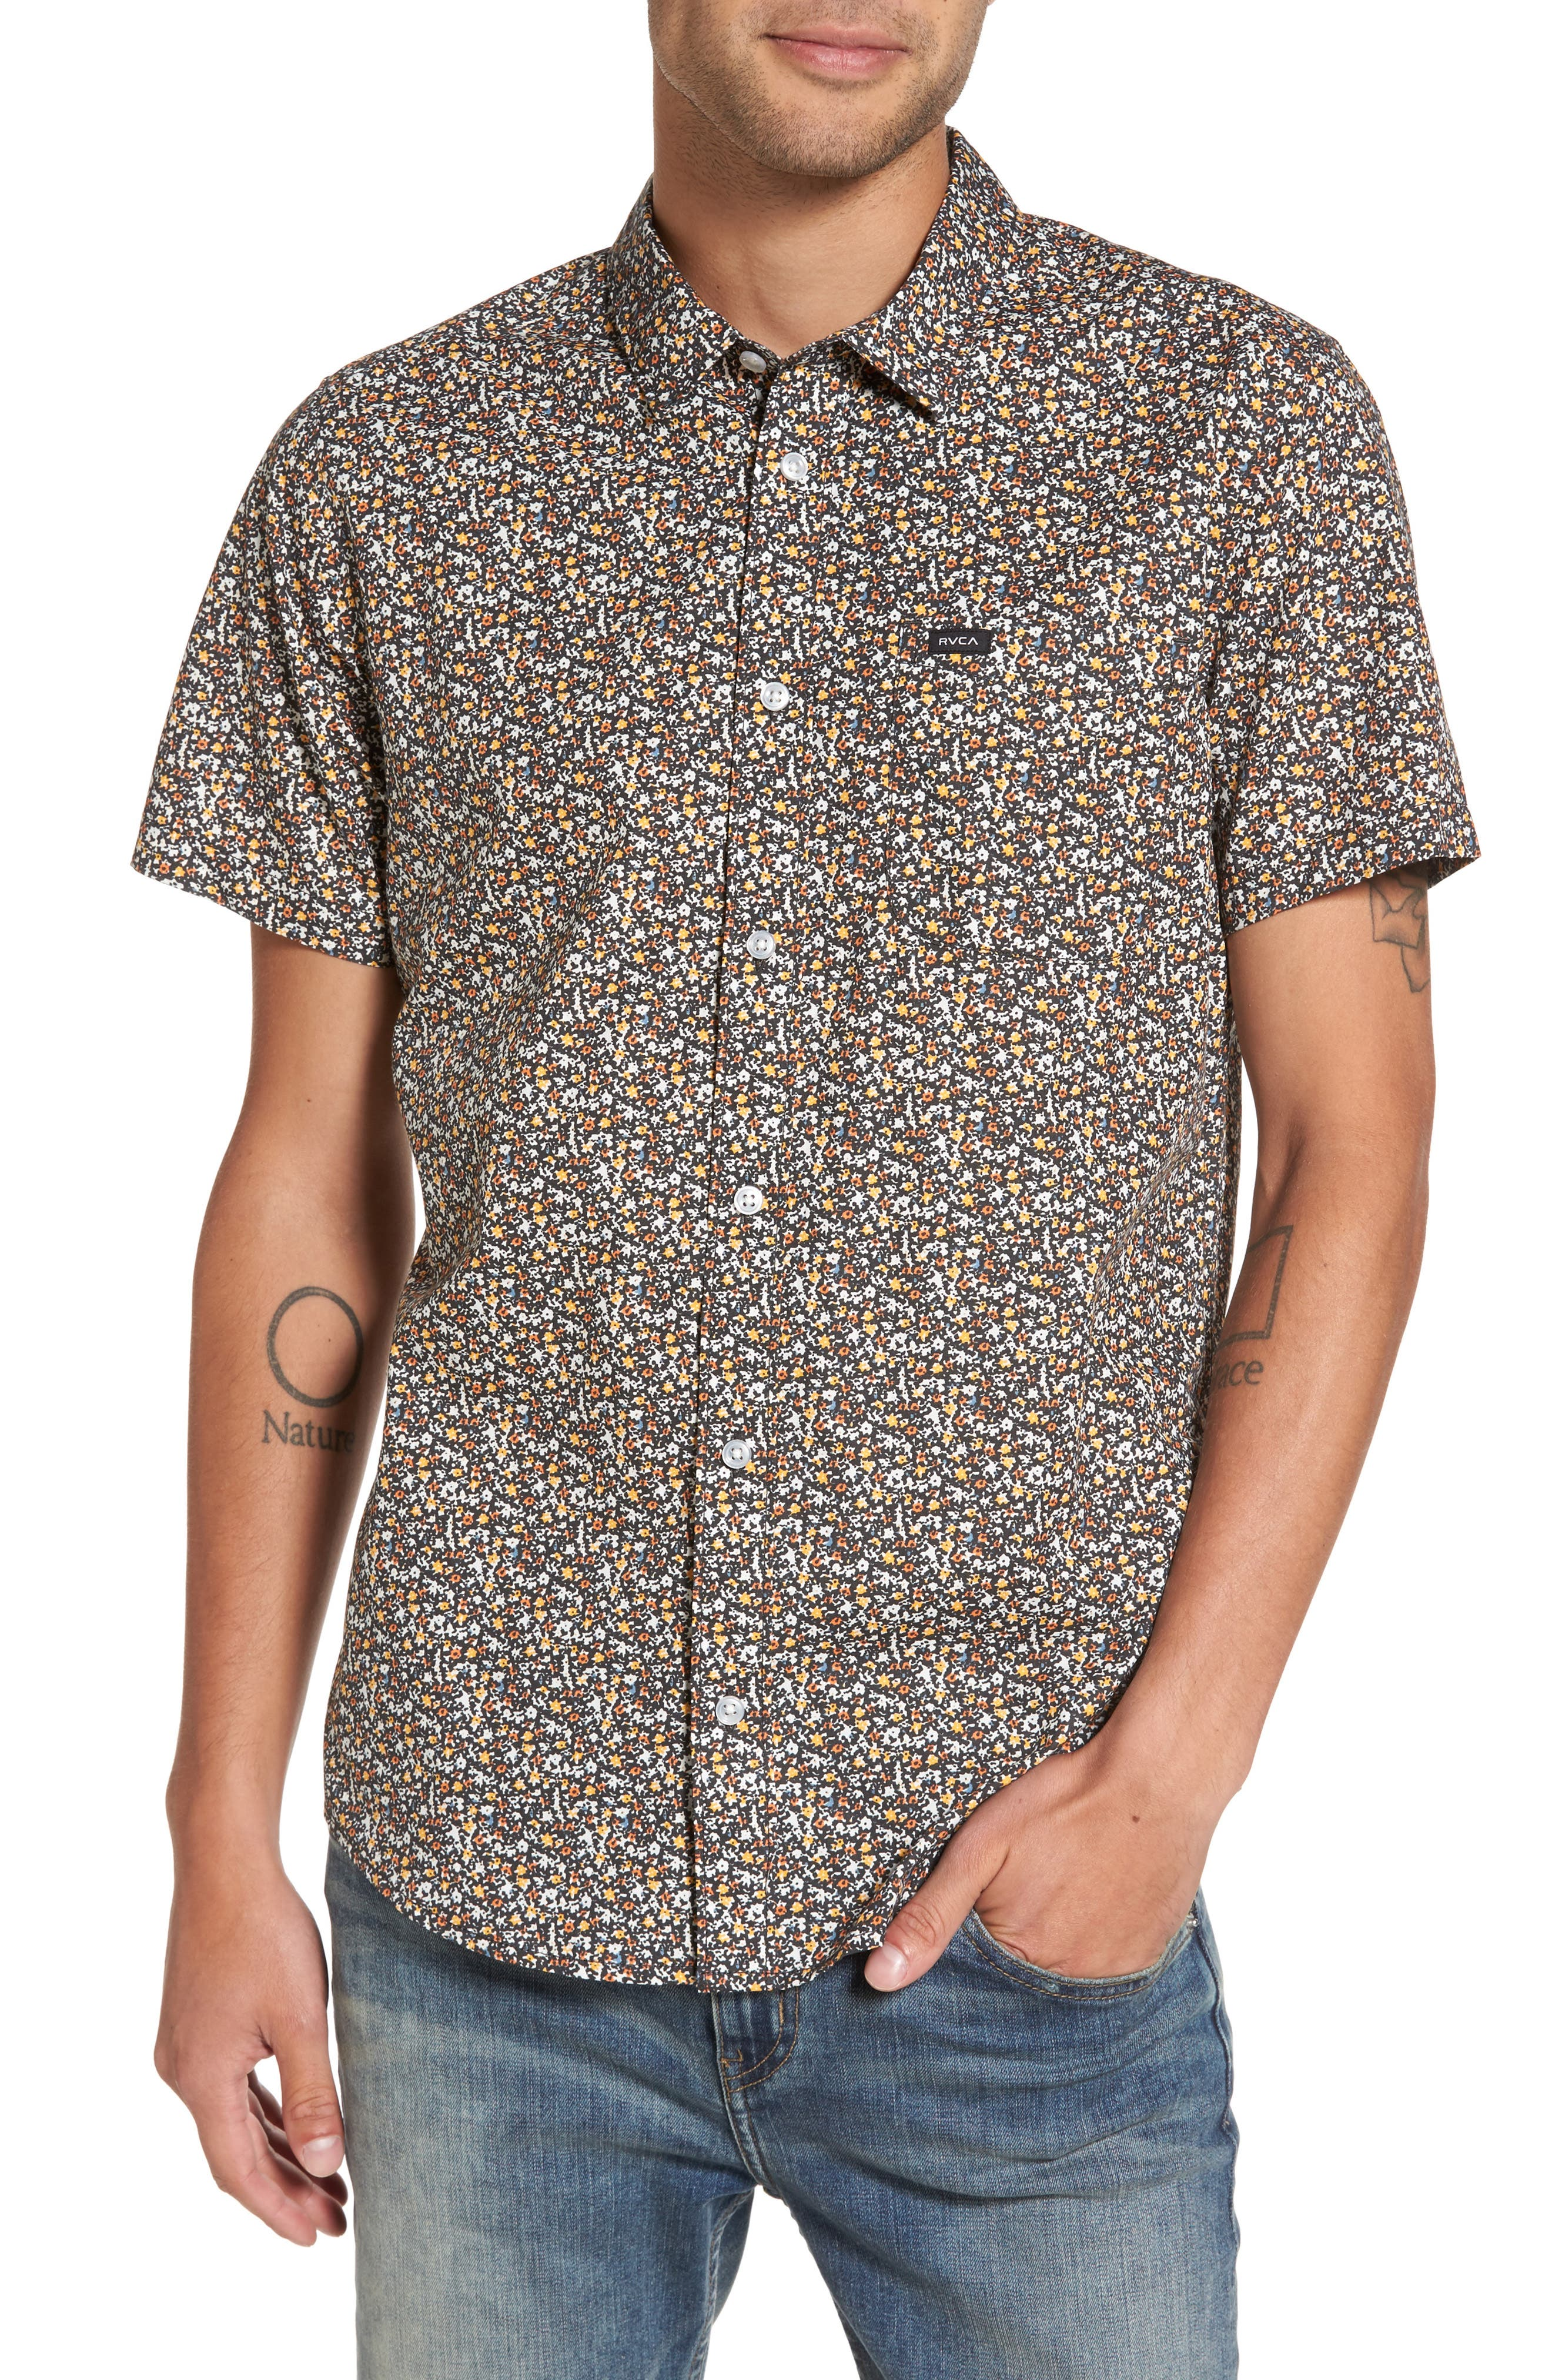 Main Image - RVCA Cluster Floral Print Woven Shirt